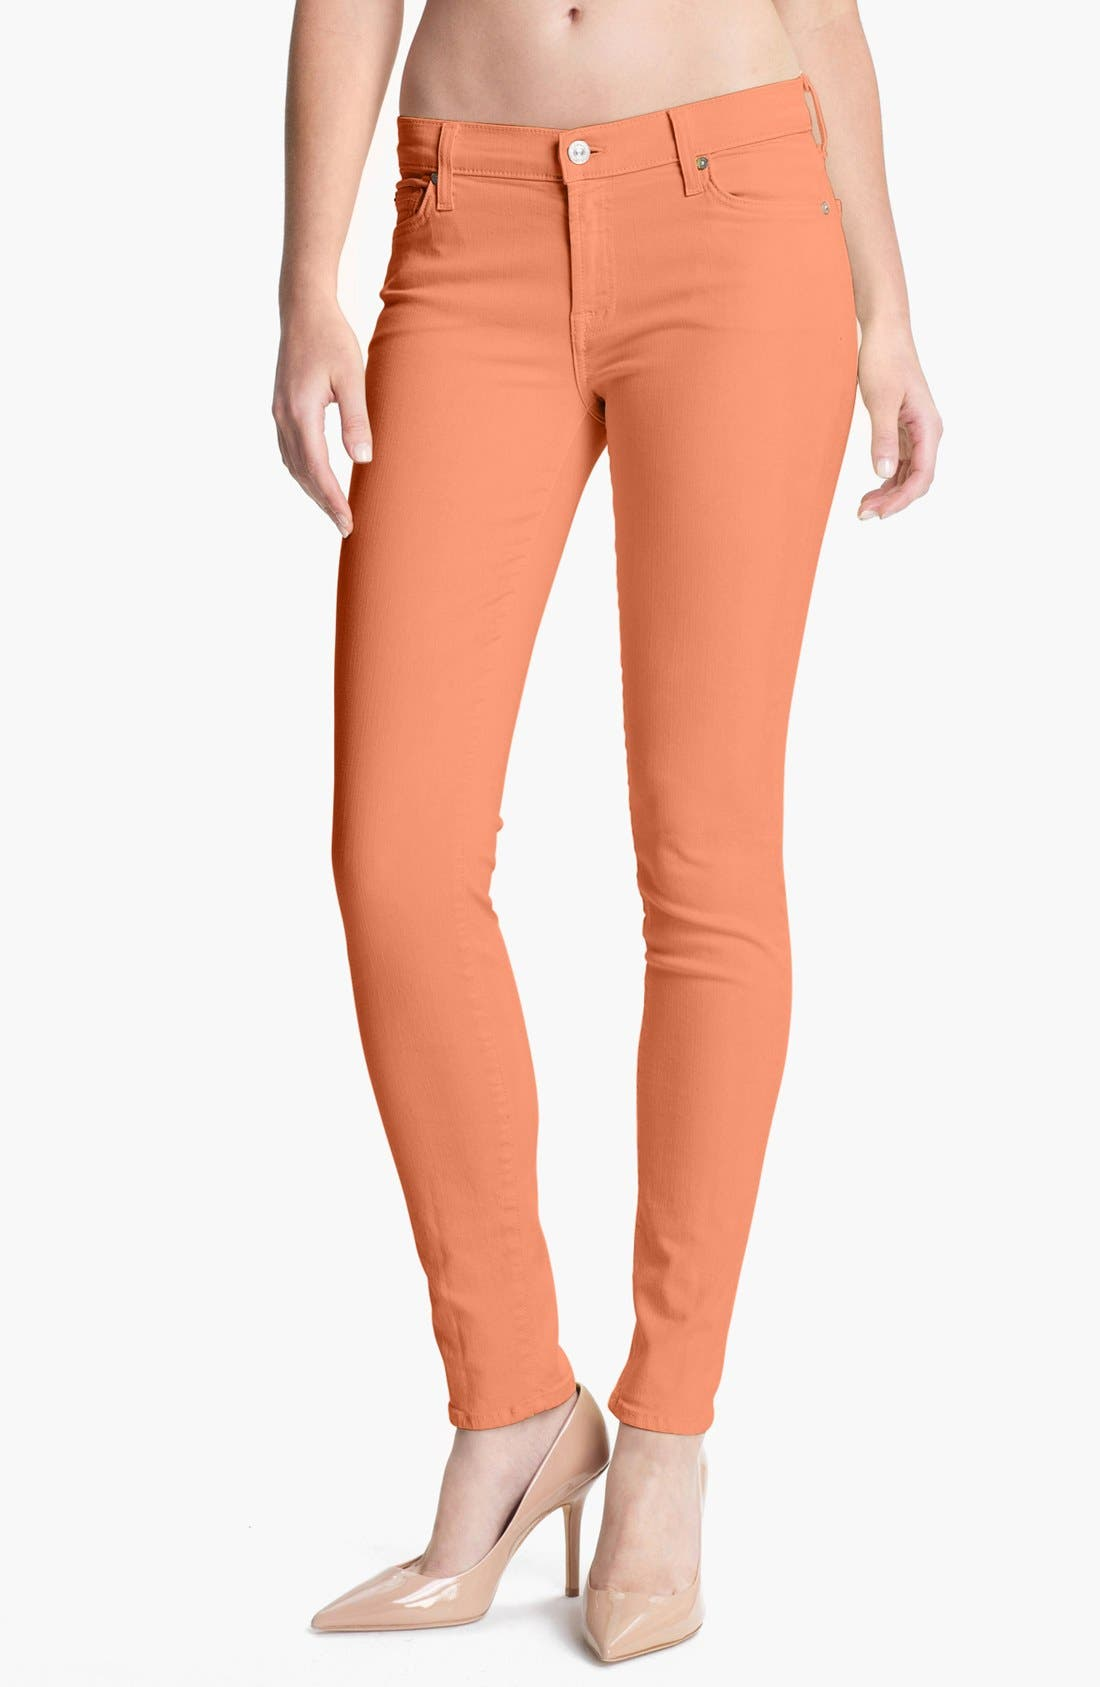 Main Image - 7 For All Mankind® 'Slim Illusion' Skinny Stretch Jeans (Apricot)